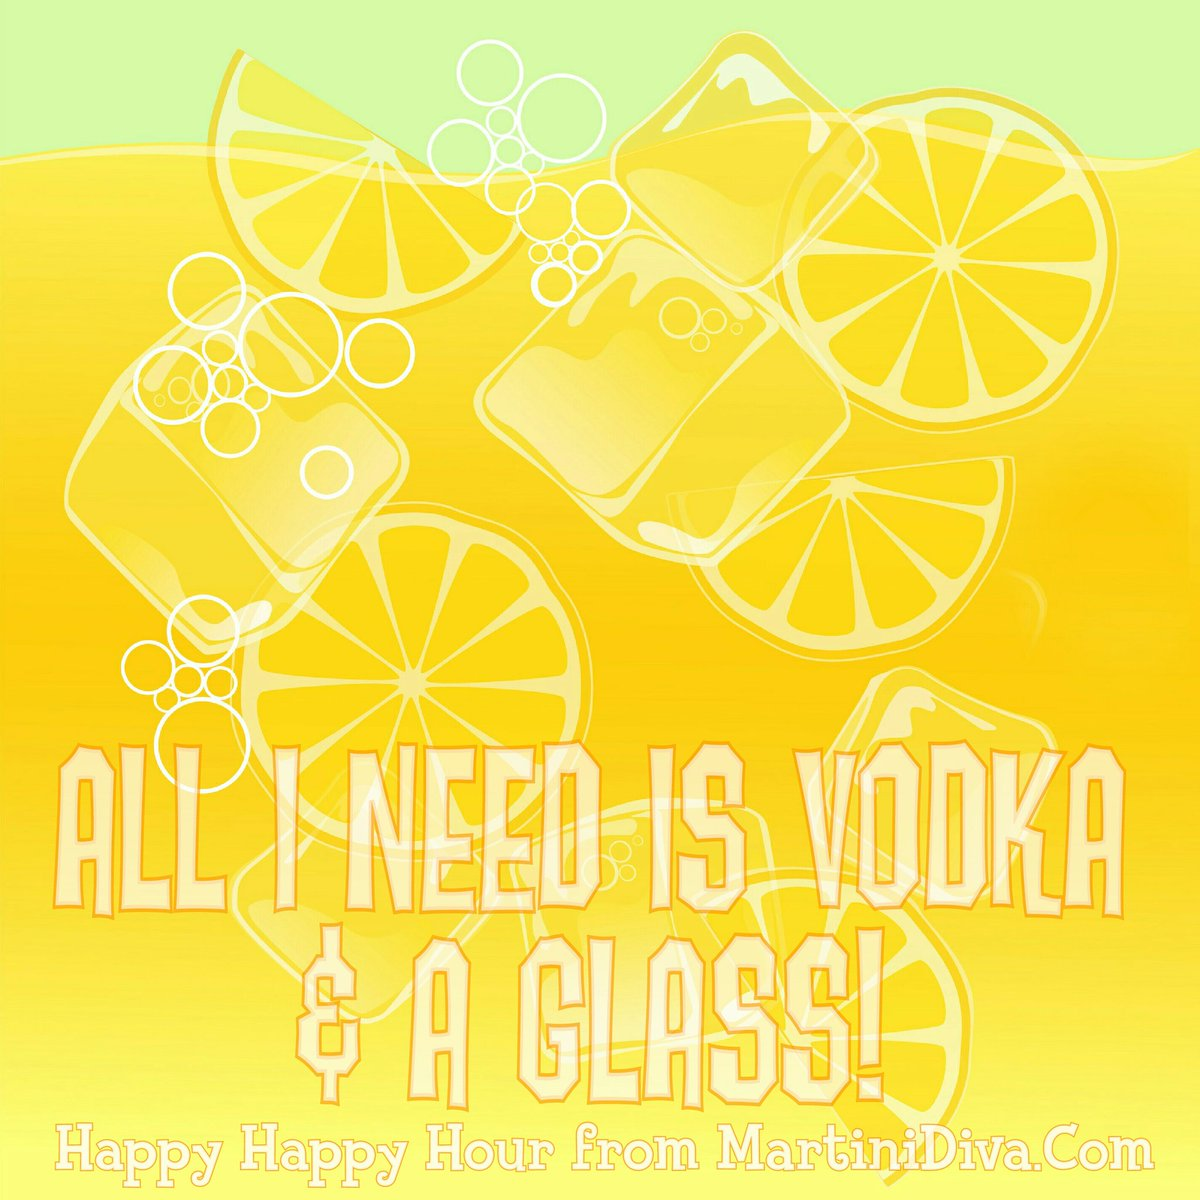 """Happy #NationalVodkaDay! """"When life gives you lemons, find someone who has #vodka and throw a party."""" ~ @Ron_White https://t.co/r2Go4vLMW2"""